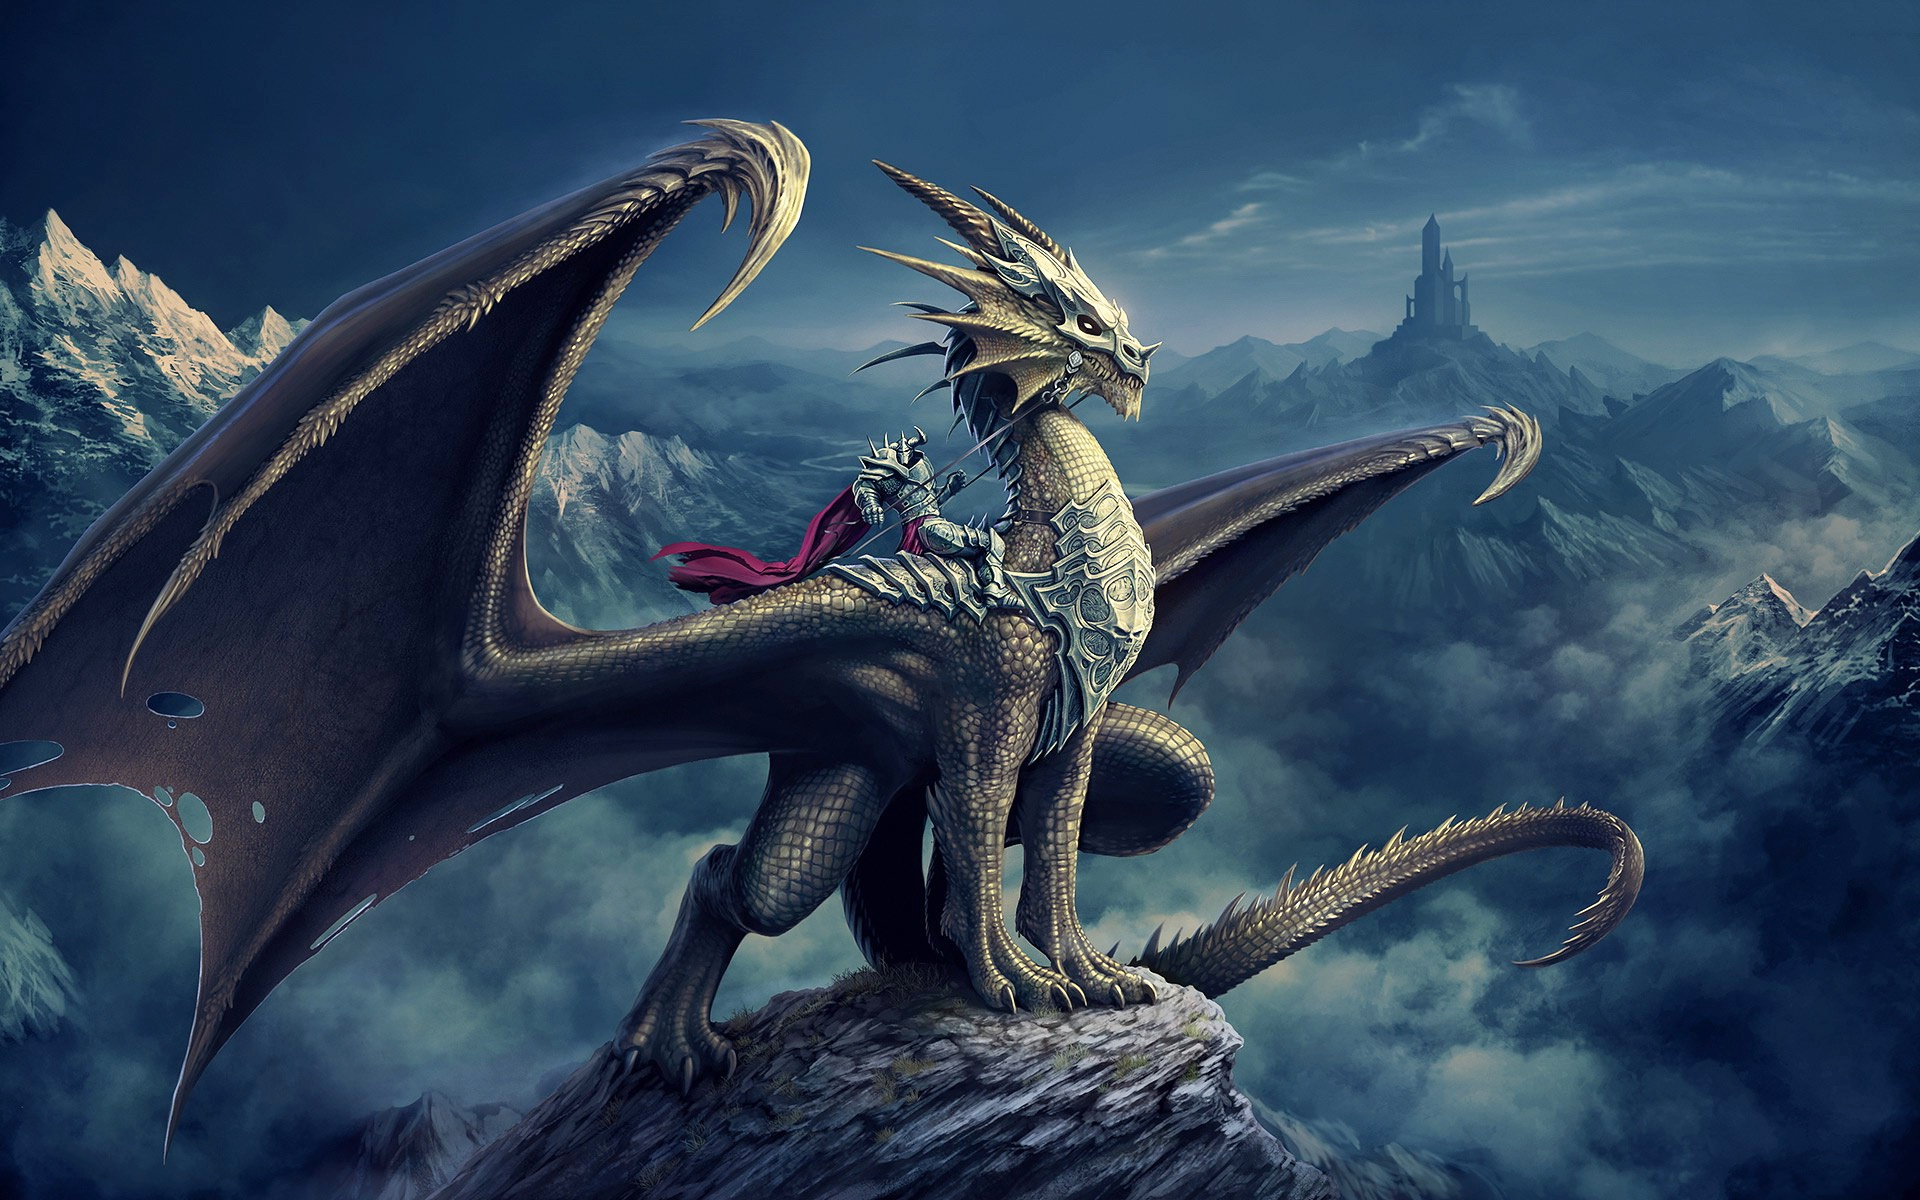 2014 Wallpapers Dragon HD Wallpapers Steam Train HD Wallpapers Dragon 1920x1200